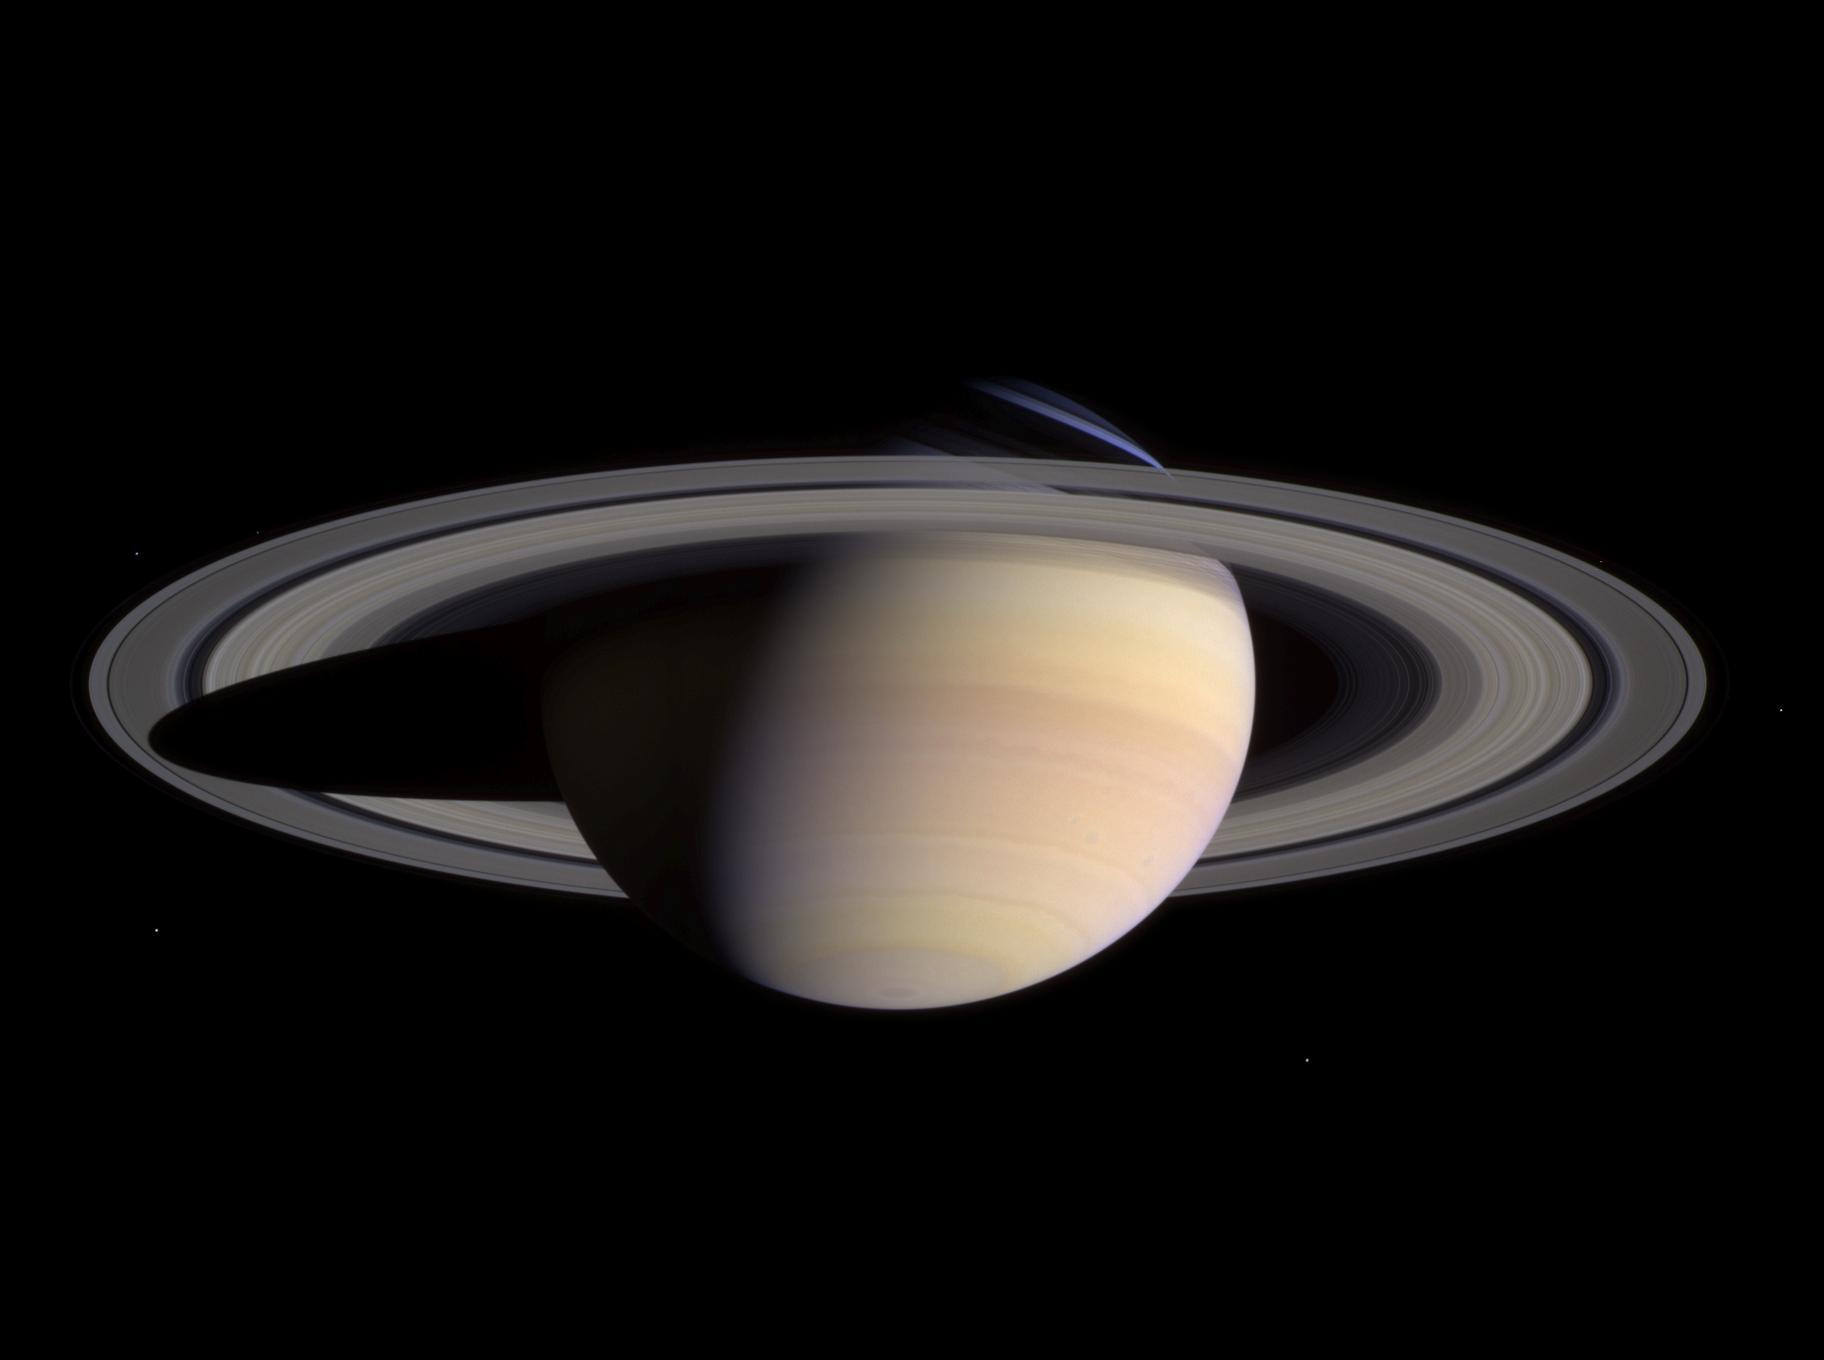 #Now in 2004 @CassiniSaturn arrives at the 6th planet from our Sun after flybys of 3 planets: http://t.co/y9hiWcFz5G